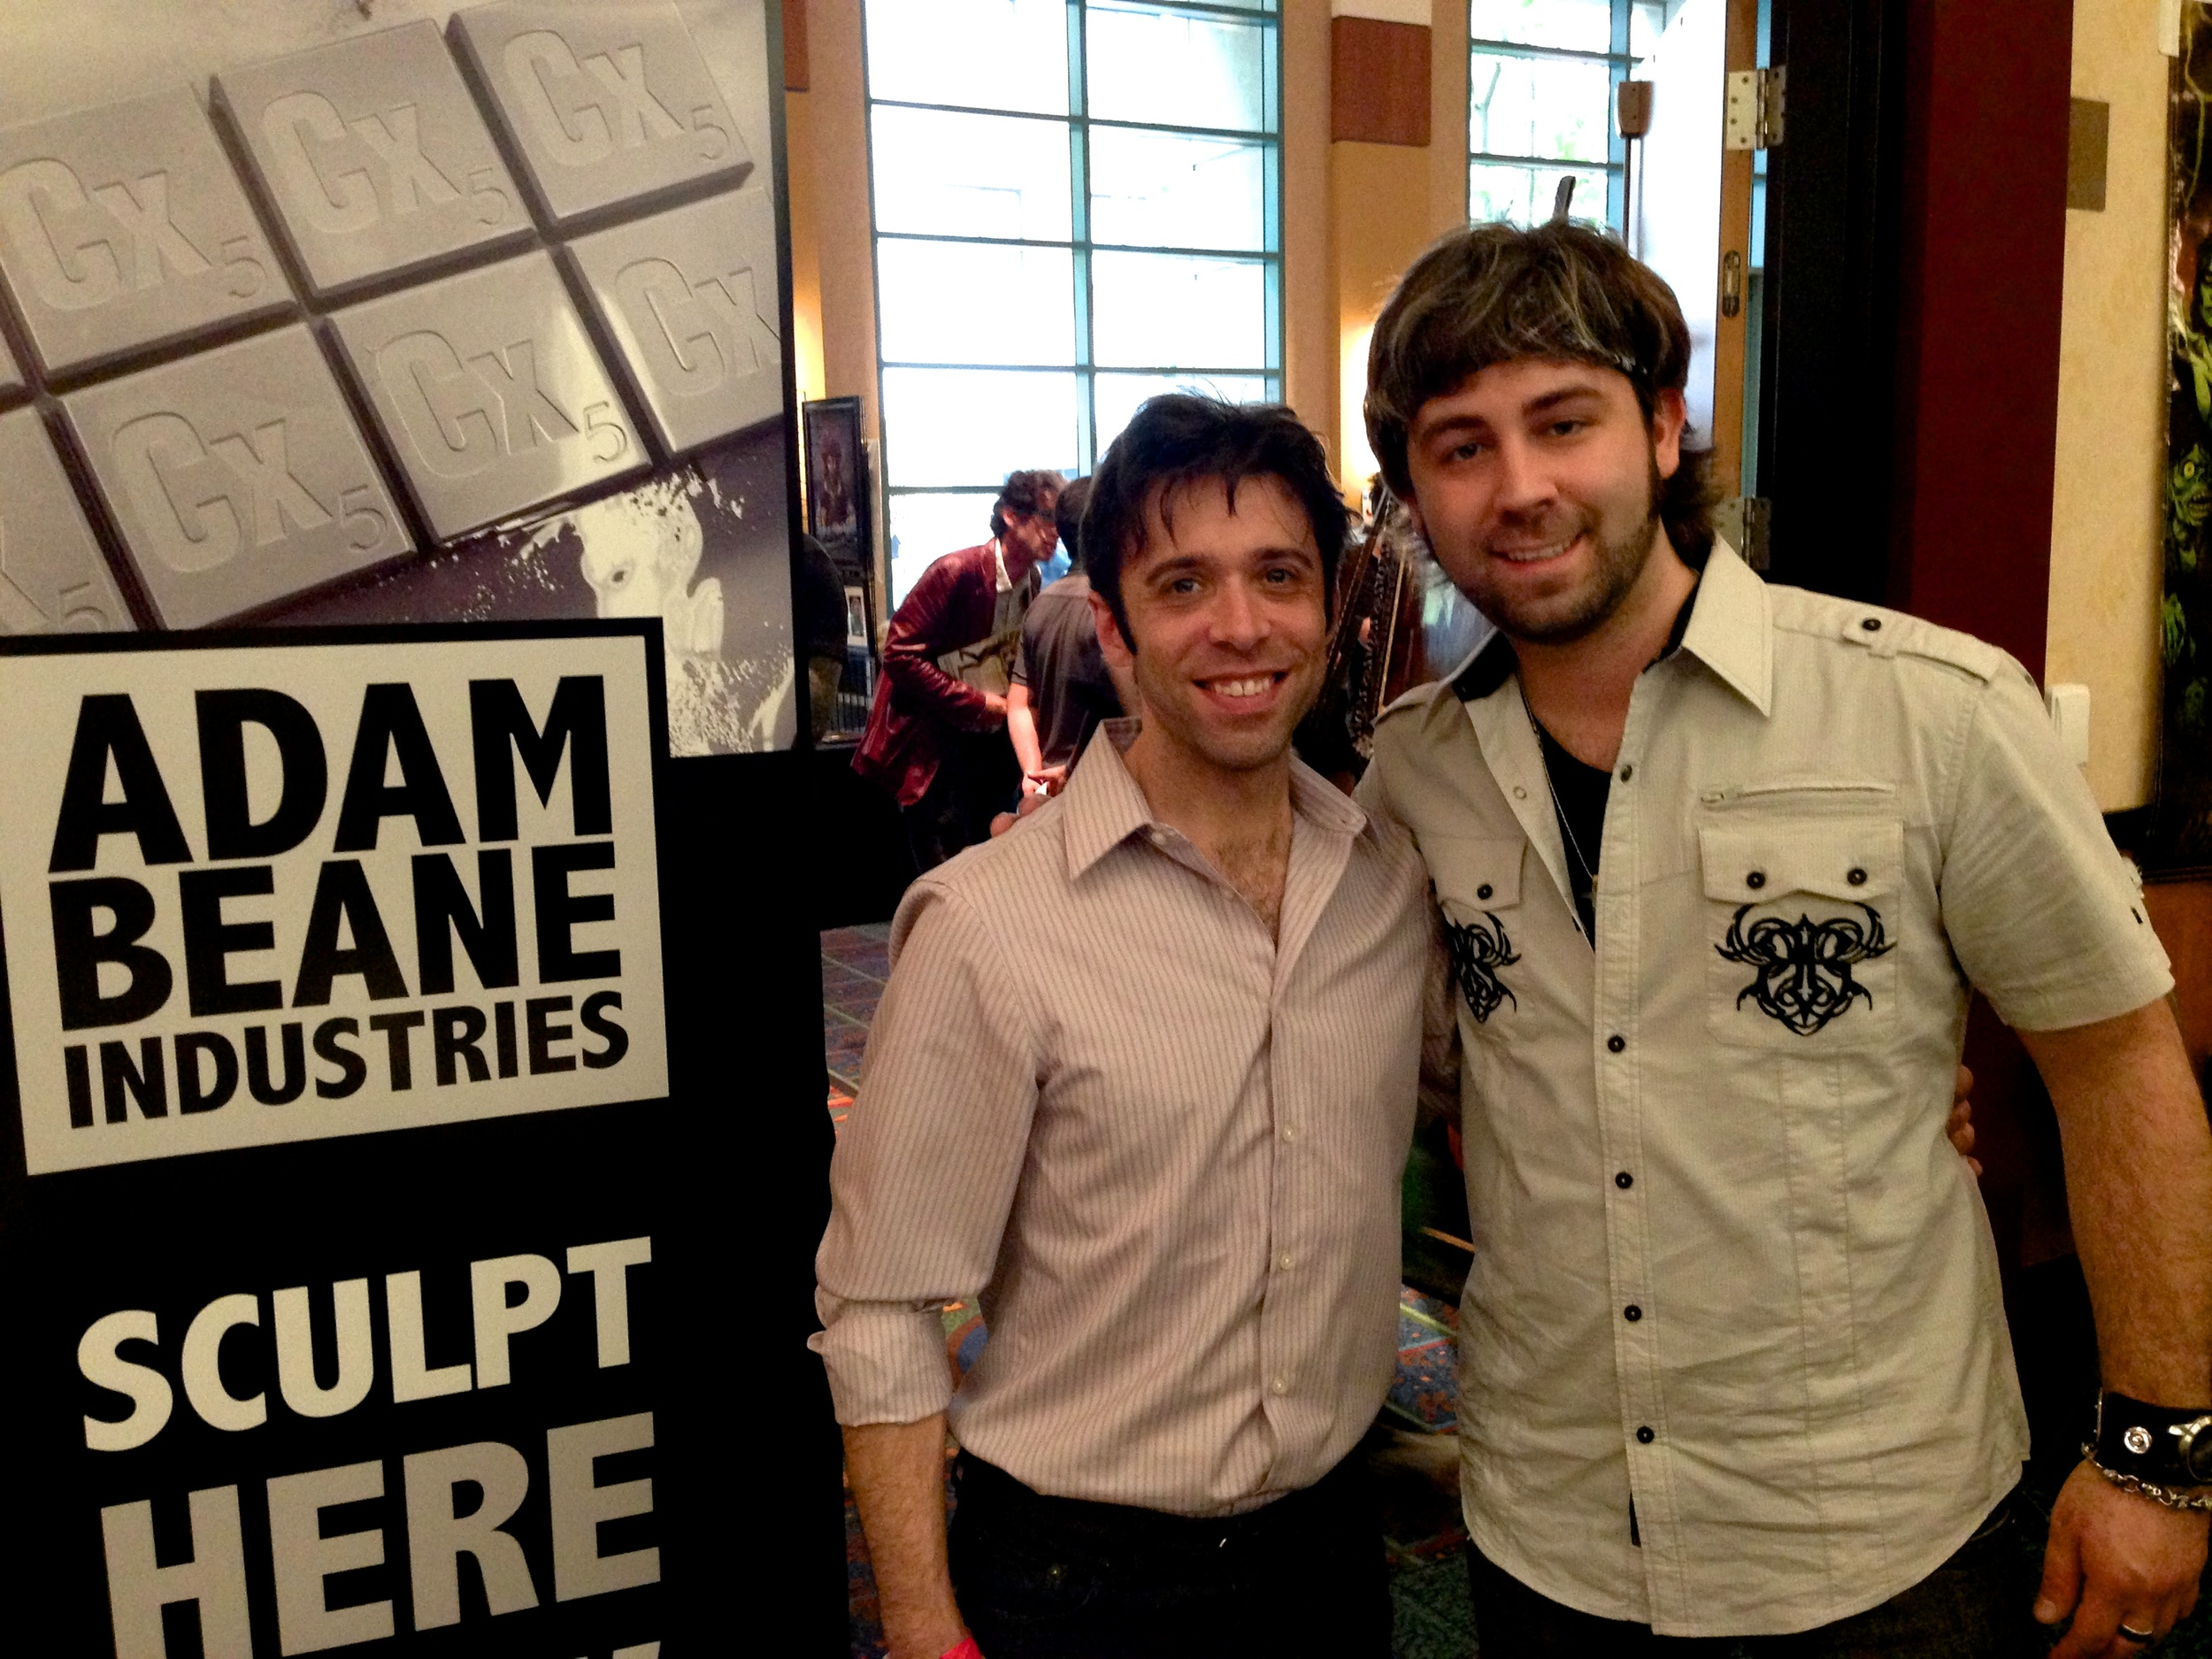 Anthony Kosar, Face Off Season 4 winner, stopped by to say hi!